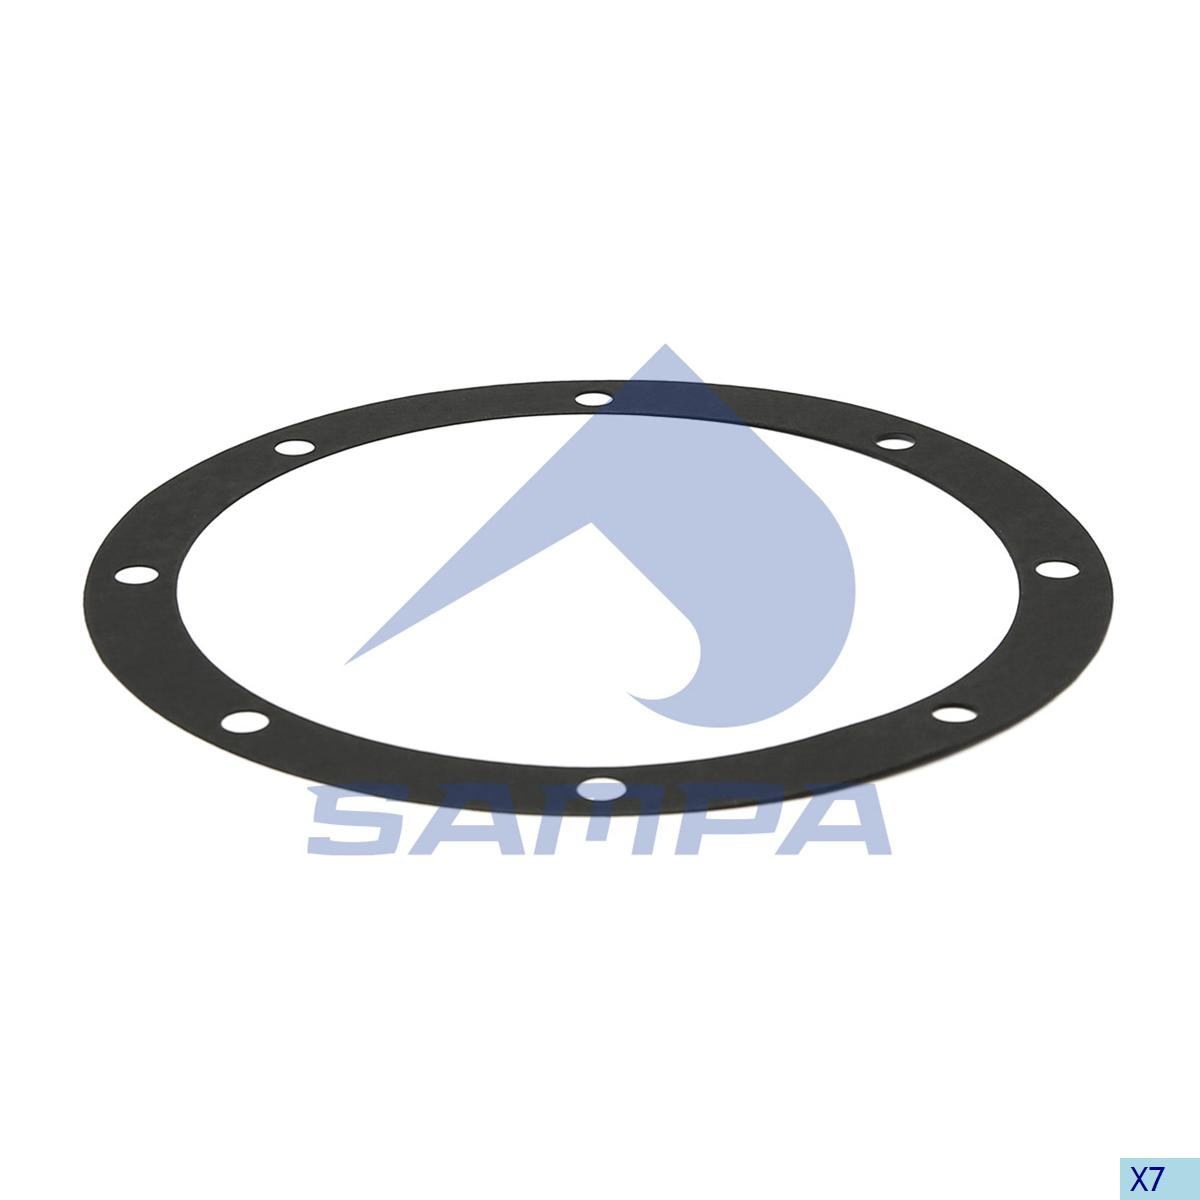 Gasket, Bogie Suspension, Ror-Meritor, Suspension